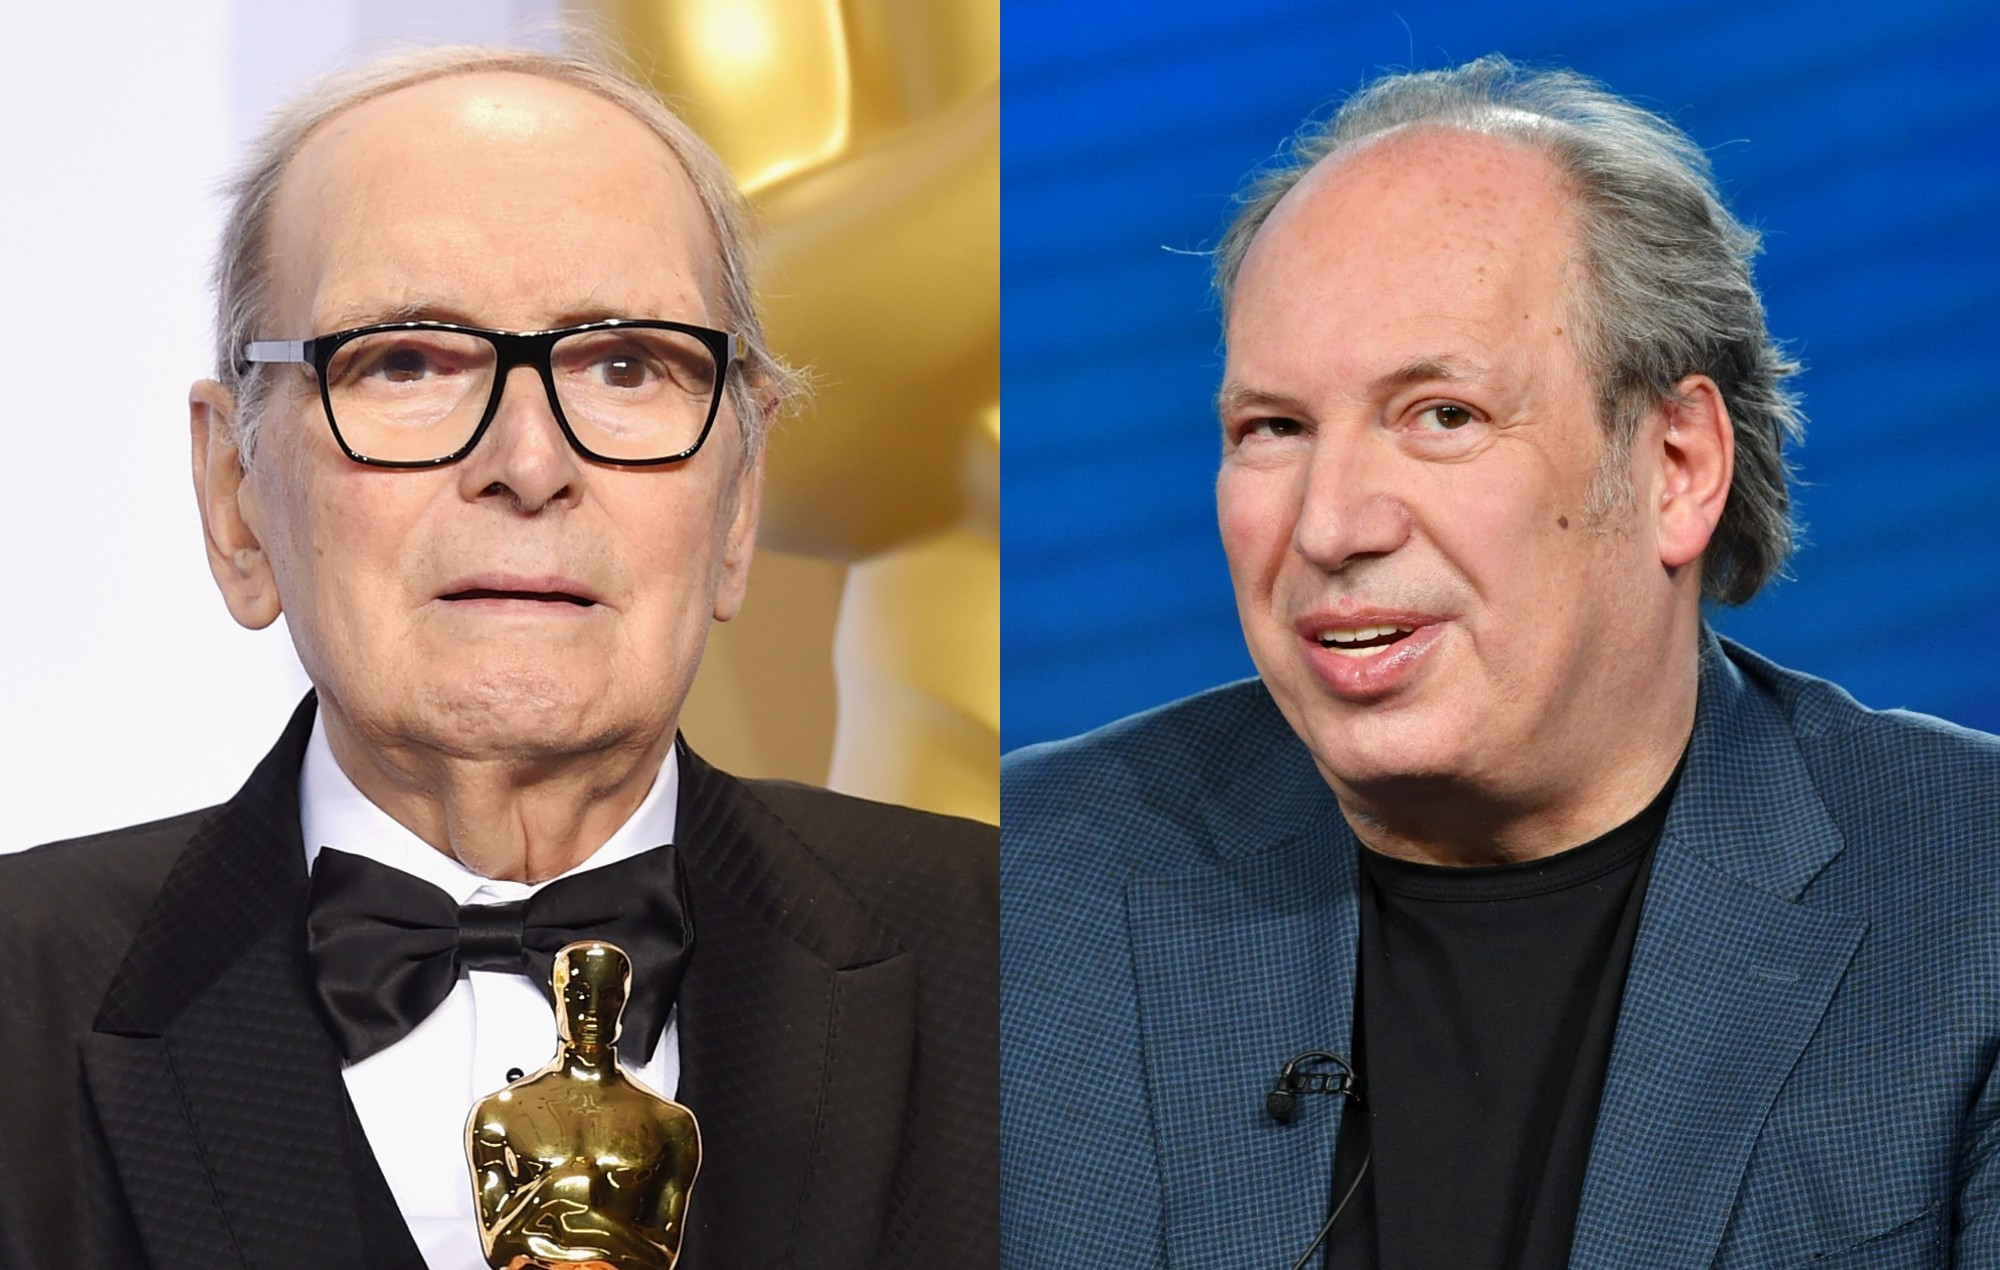 """Hans Zimmer pays tribute to Ennio Morricone: """"He taught me that the simplest melody is the hardest"""""""